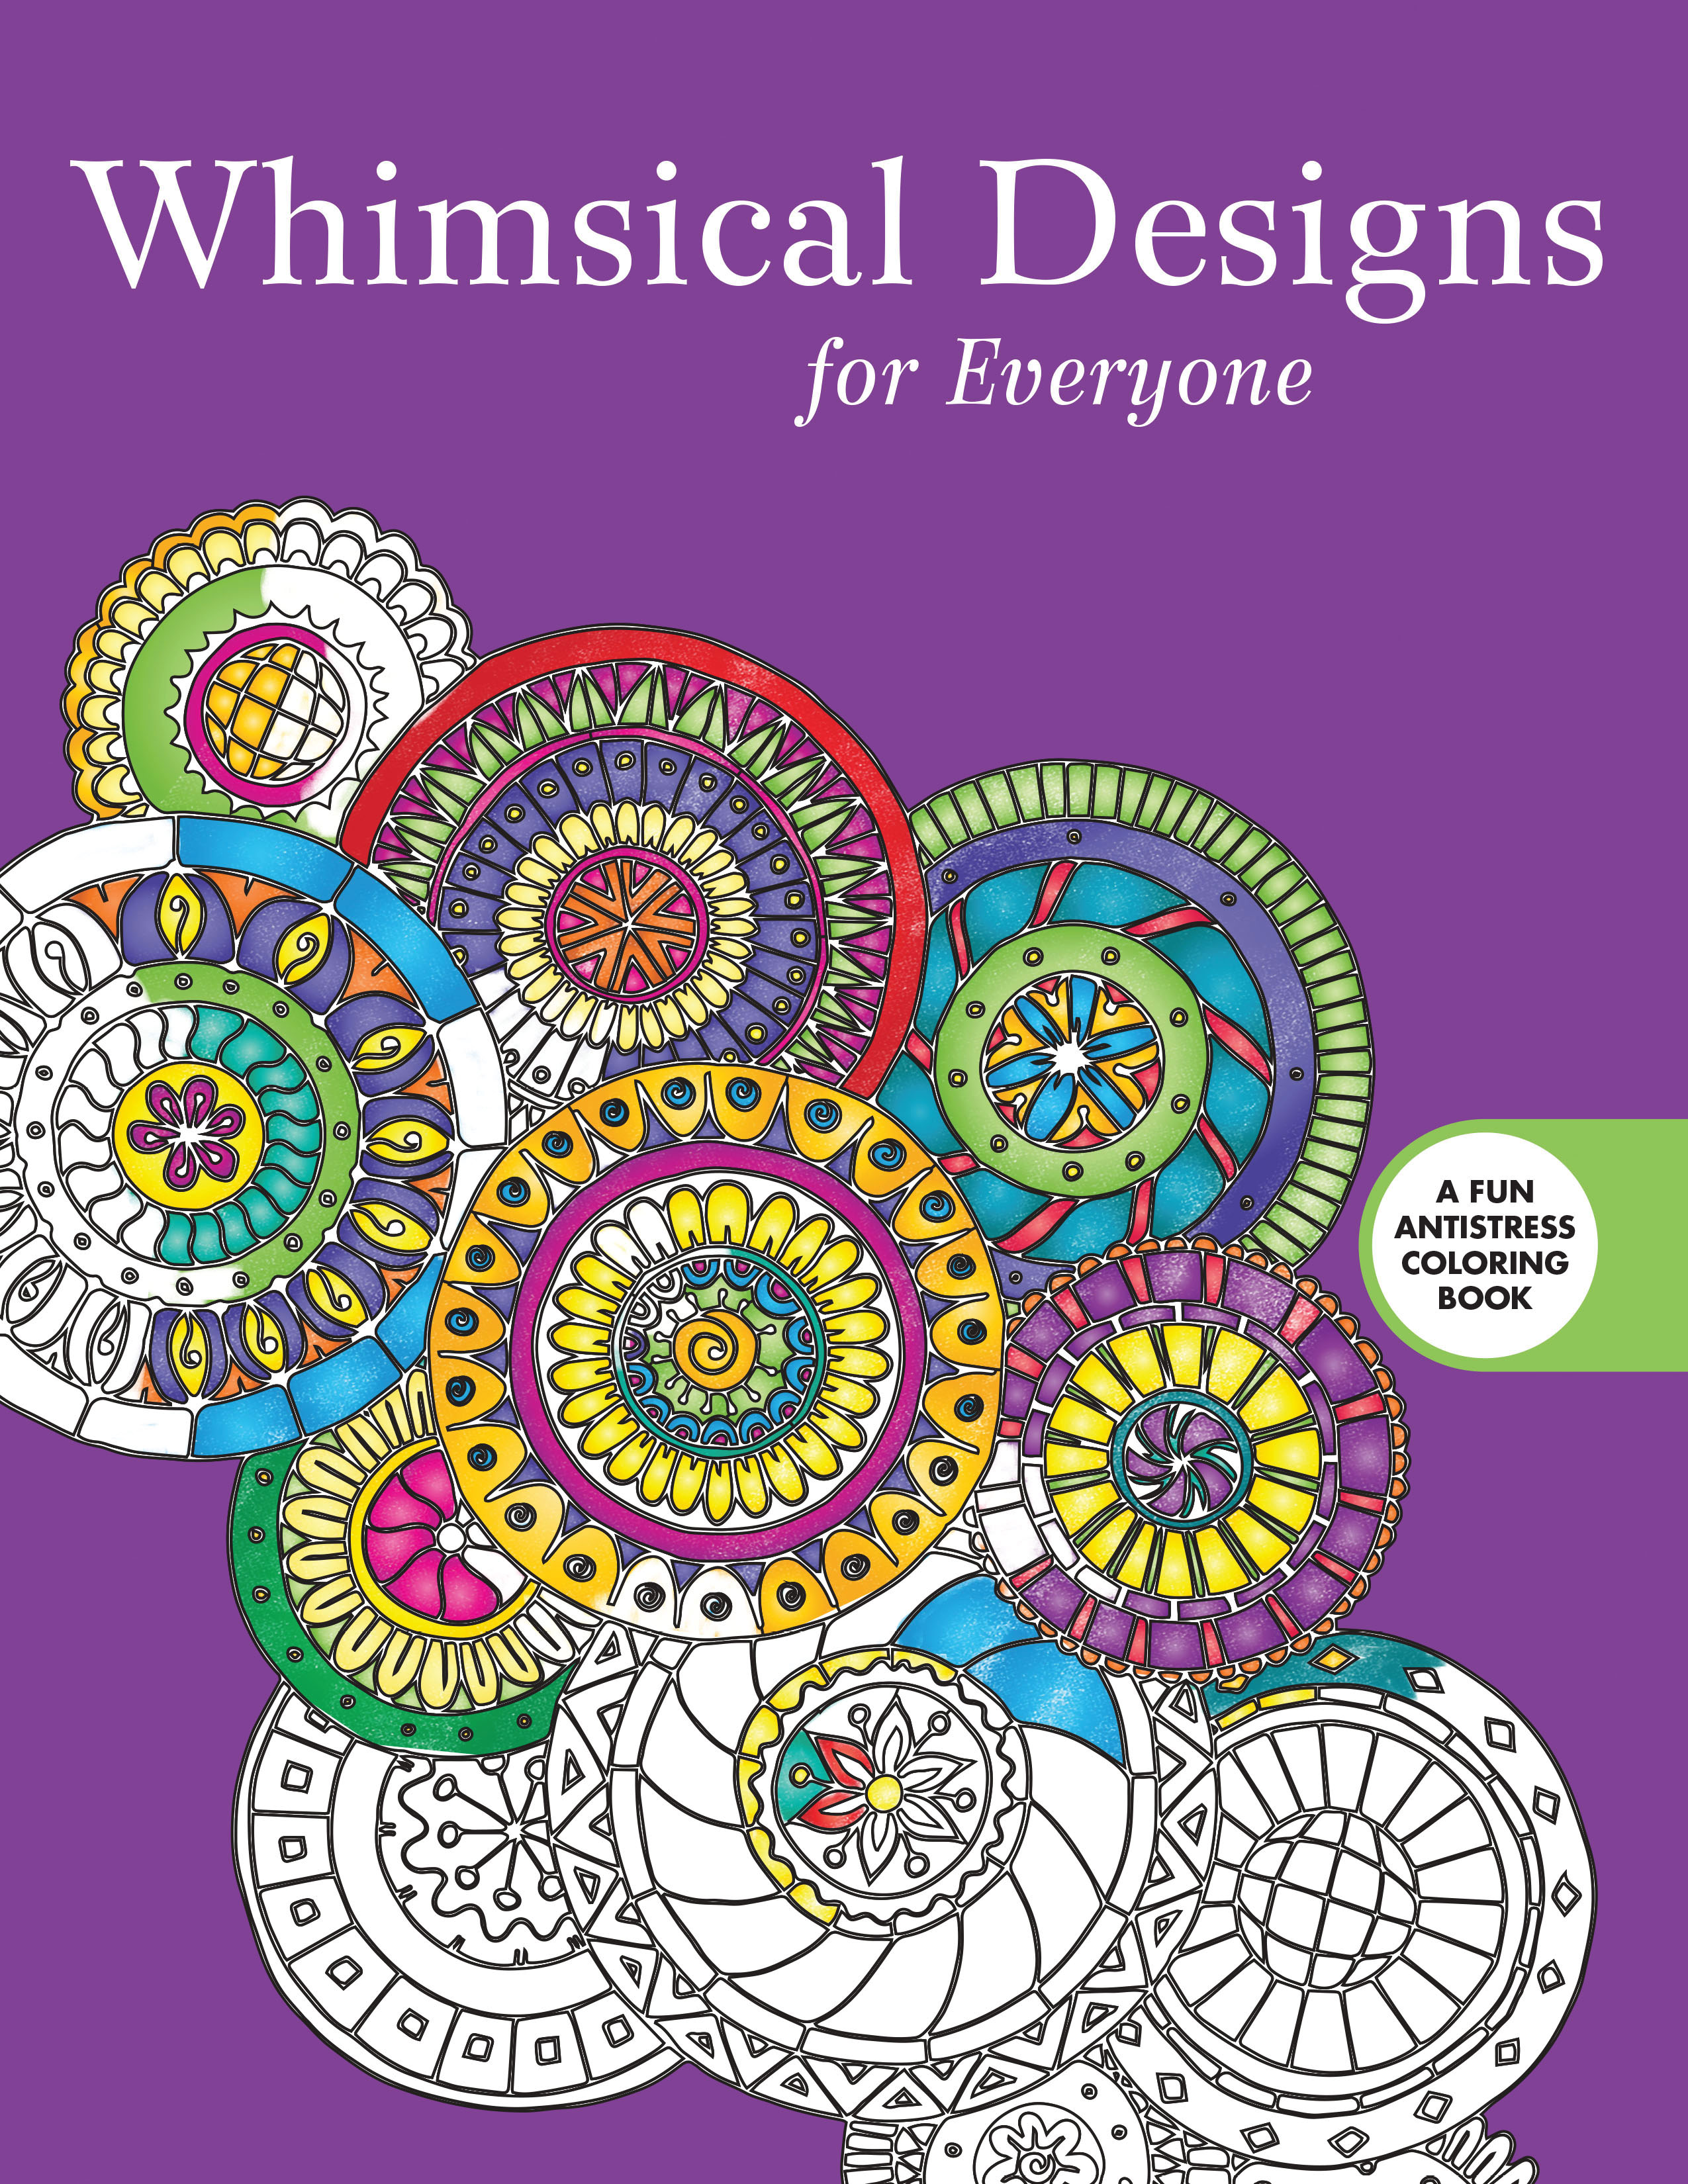 Whimsical designs coloring book - Whimsical Art Encompasses Various Genres That Span Generations It Is The Art That Reminds Us To Enjoy Life And Brings Our Inner Child To The Surface